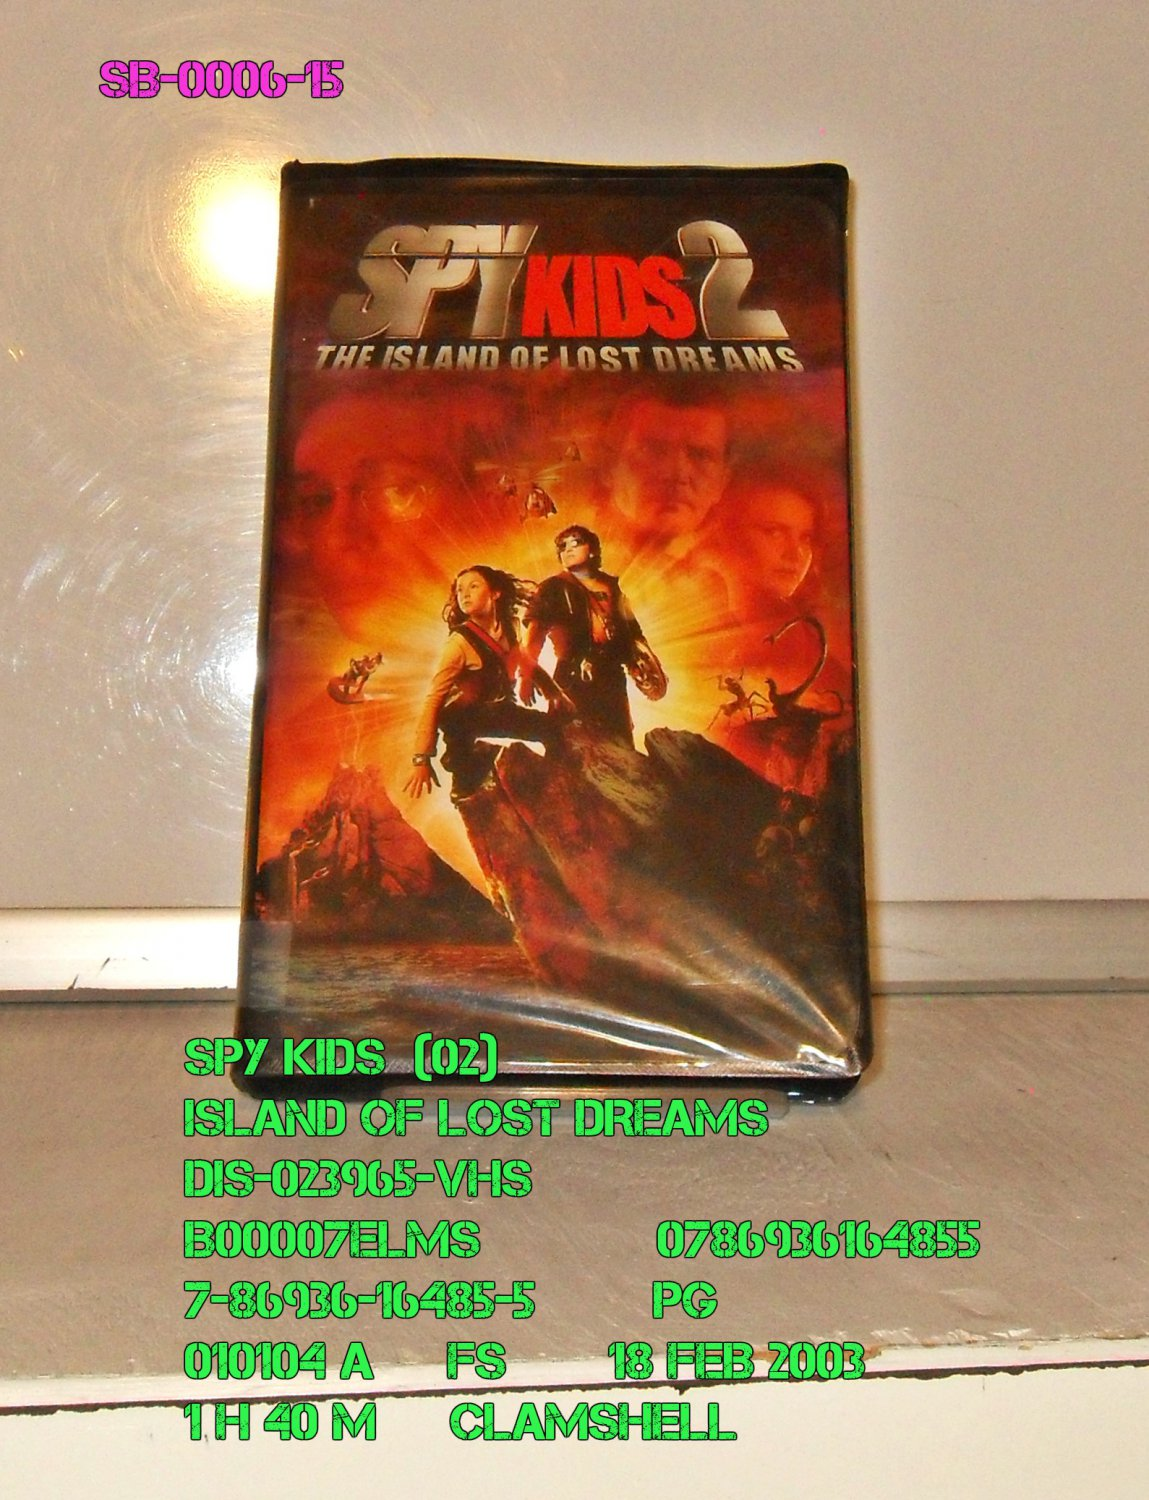 VHS - SPY KIDS  (02)  ISLAND OF LOST DREAMS